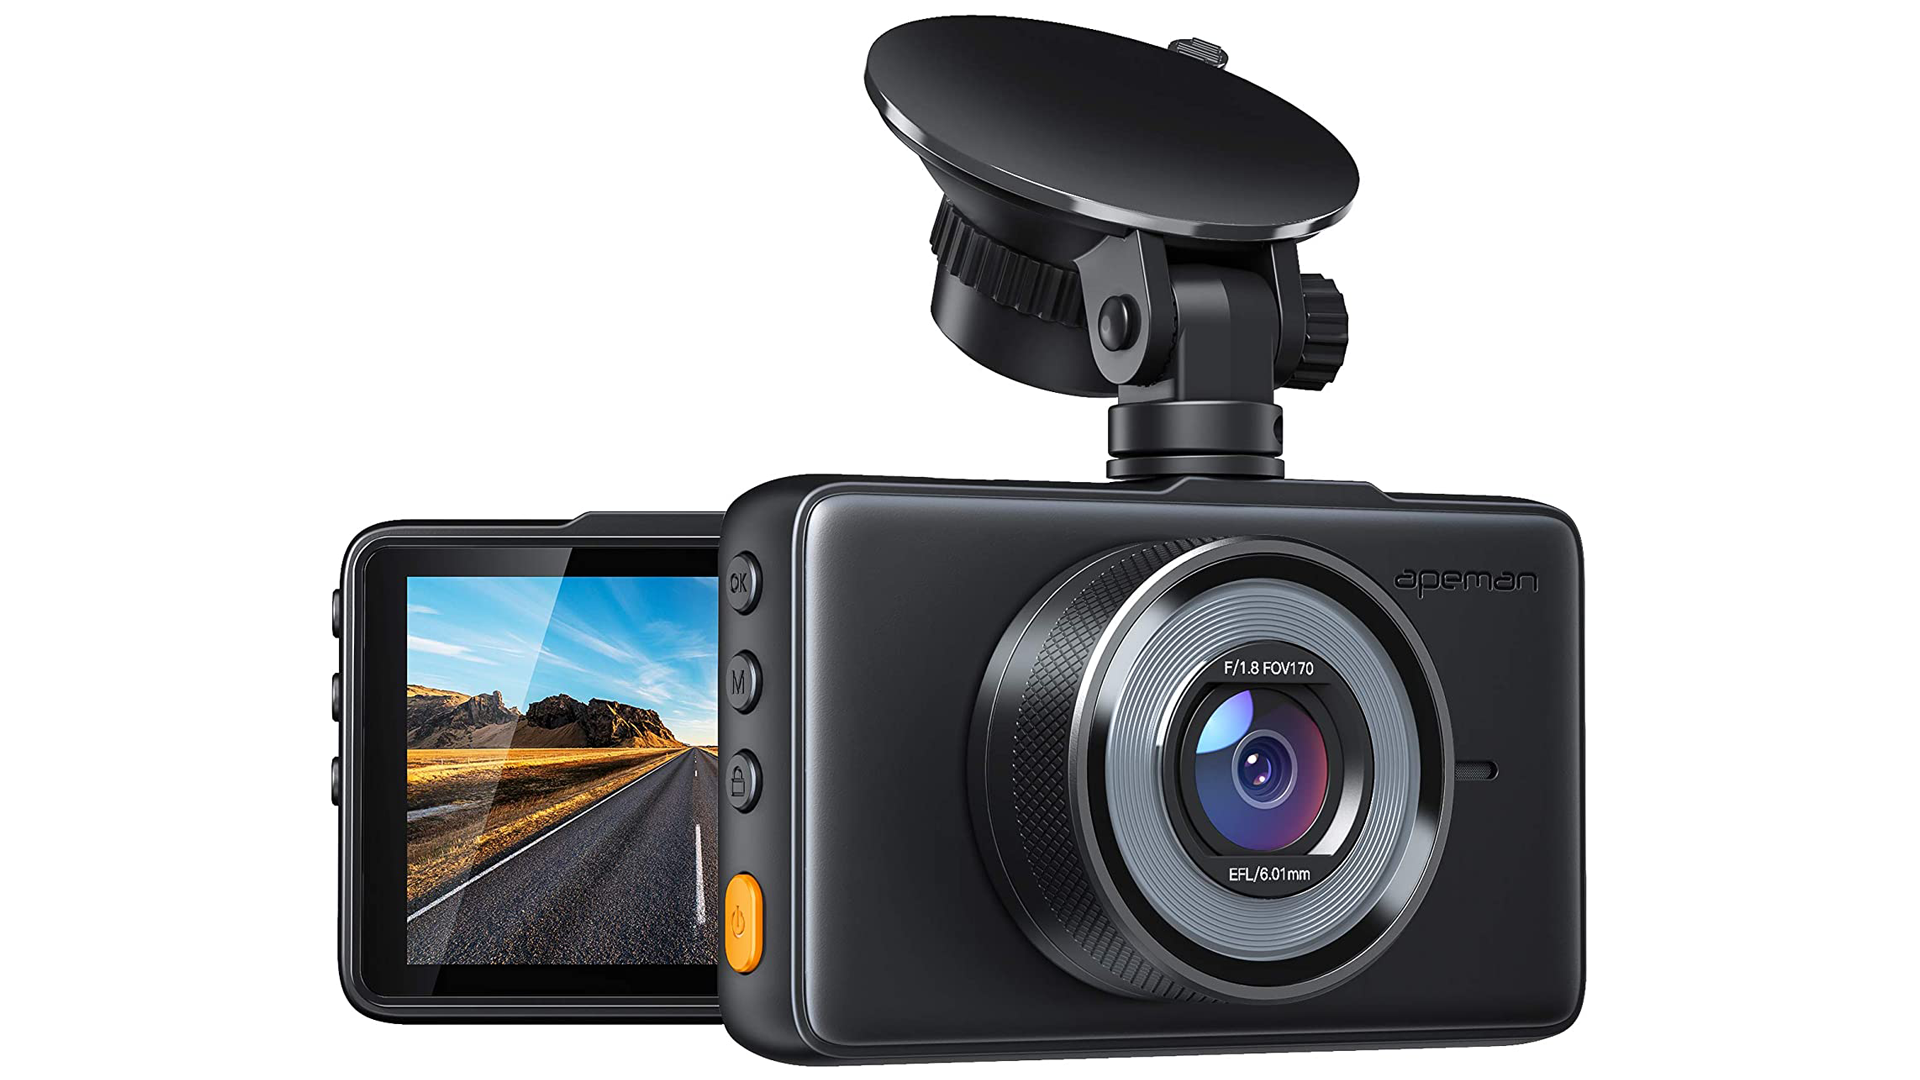 Front and partial-rear view of the APEMAN 1080p FHD dash cam